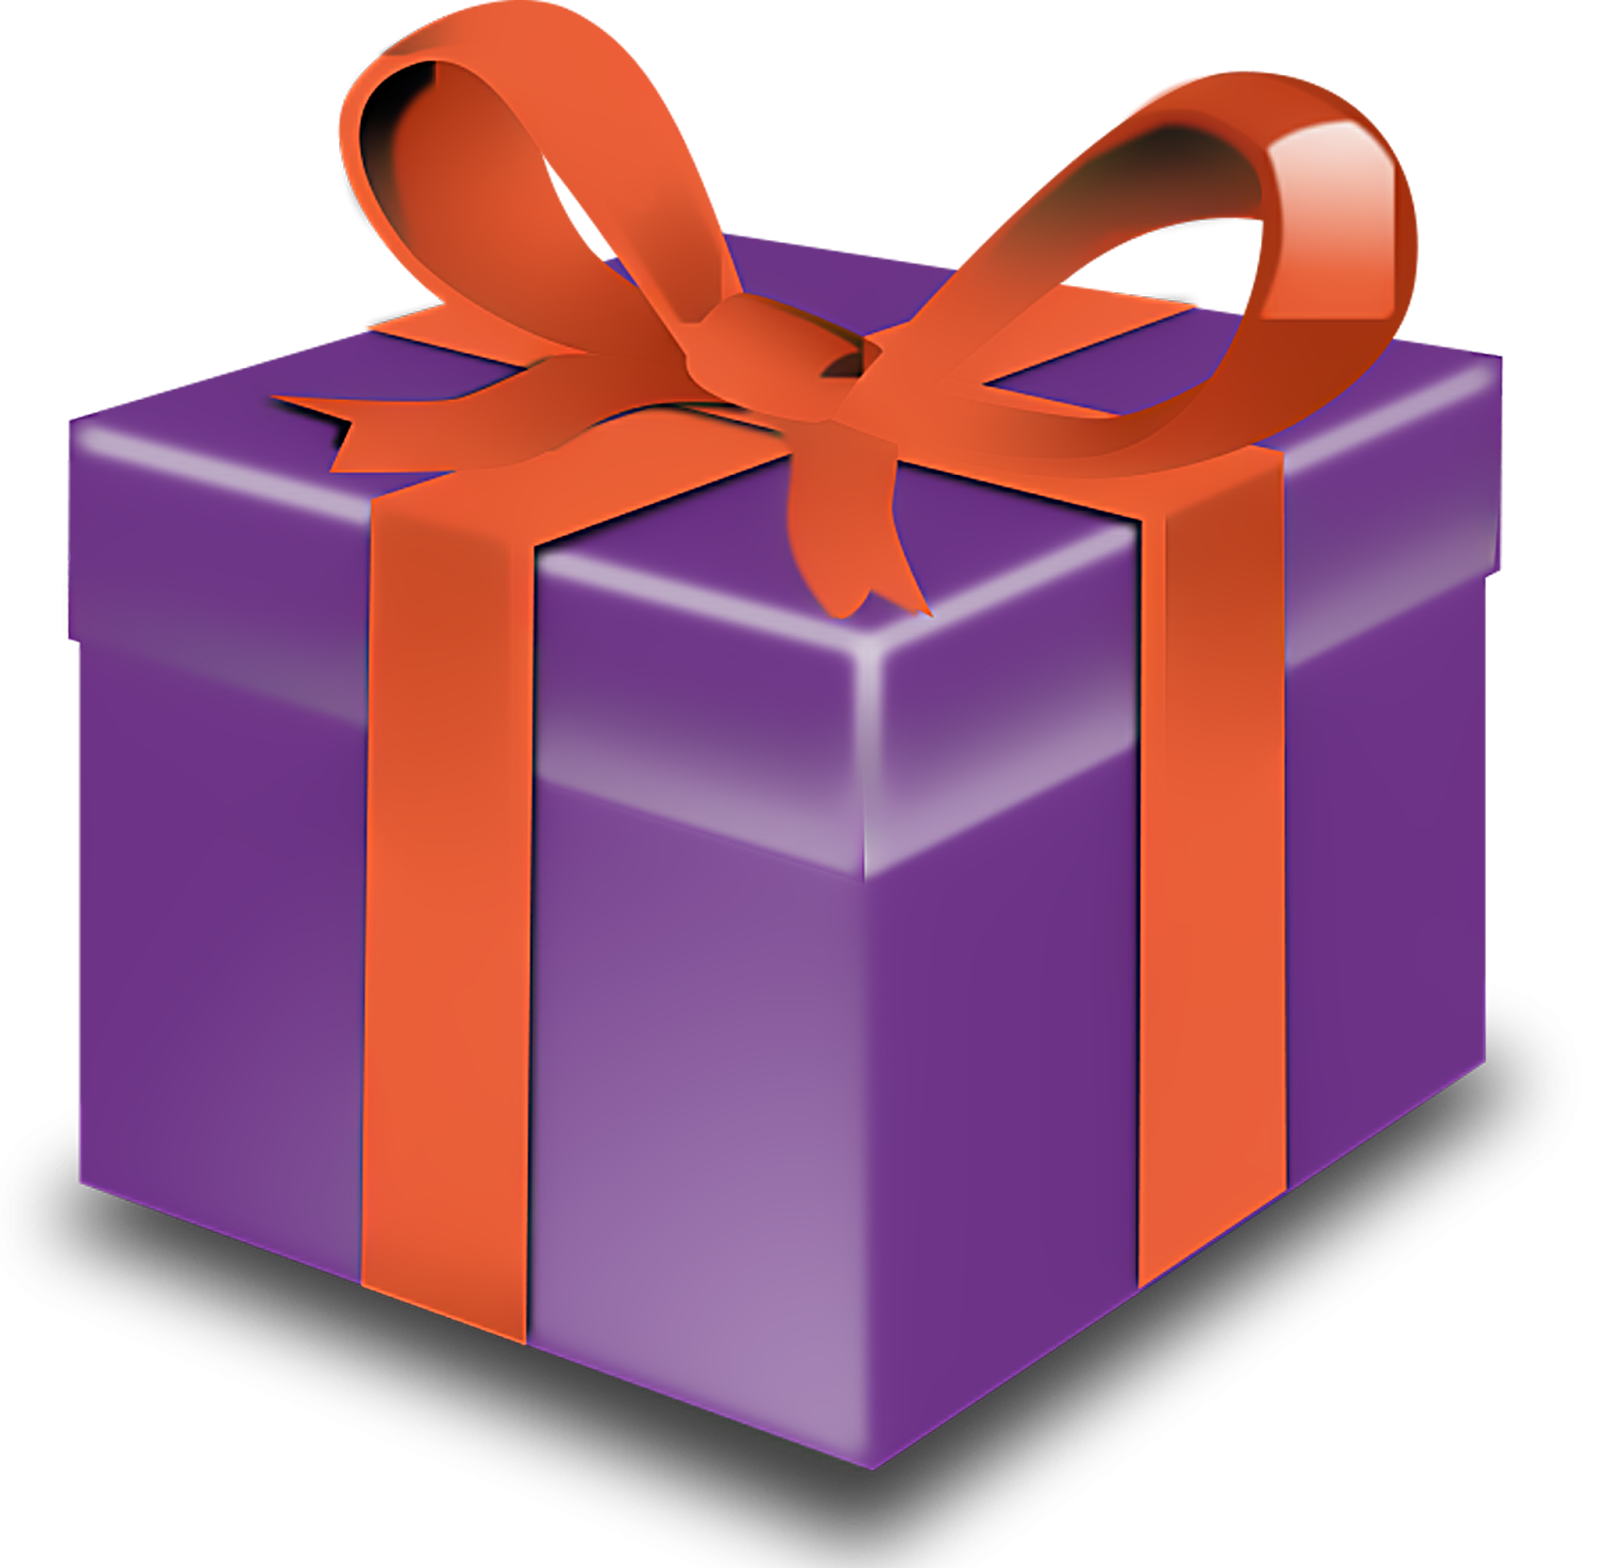 1600x1568 Collection Of Gifts Clipart Transparent High Quality Free